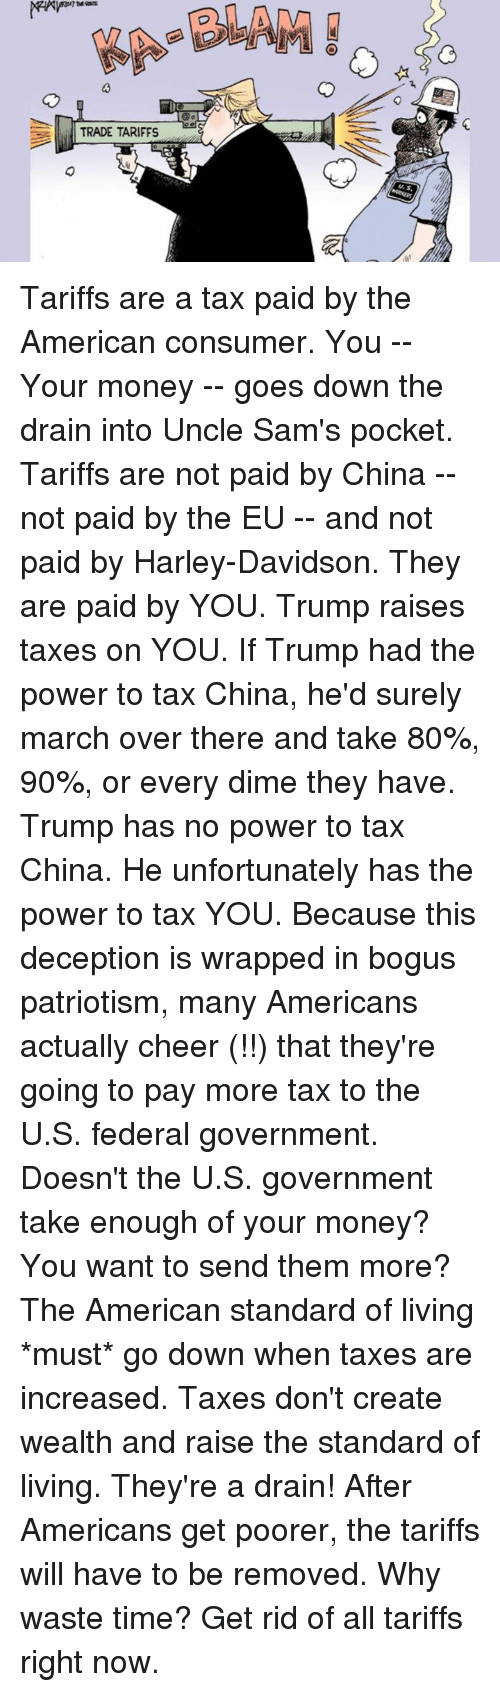 Dank, Money, and Taxes: TRADE TARIFFS Tariffs are a tax paid by the American consumer.  You -- Your money -- goes down the drain into Uncle Sam's pocket.  Tariffs are not paid by China -- not paid by the EU -- and not paid by Harley-Davidson.  They are paid by YOU. Trump raises taxes on YOU.  If Trump had the power to tax China, he'd surely march over there and take 80%, 90%, or every dime they have.  Trump has no power to tax China.   He unfortunately has the power to tax YOU.  Because this deception is wrapped in bogus patriotism, many Americans actually cheer (!!) that they're going to pay more tax to the U.S. federal government.  Doesn't the U.S. government take enough of your money?  You want to send them more?  The American standard of living *must* go down when taxes are increased. Taxes don't create wealth and raise the standard of living. They're a drain!  After Americans get poorer, the tariffs will have to be removed.   Why waste time?   Get rid of all tariffs right now.